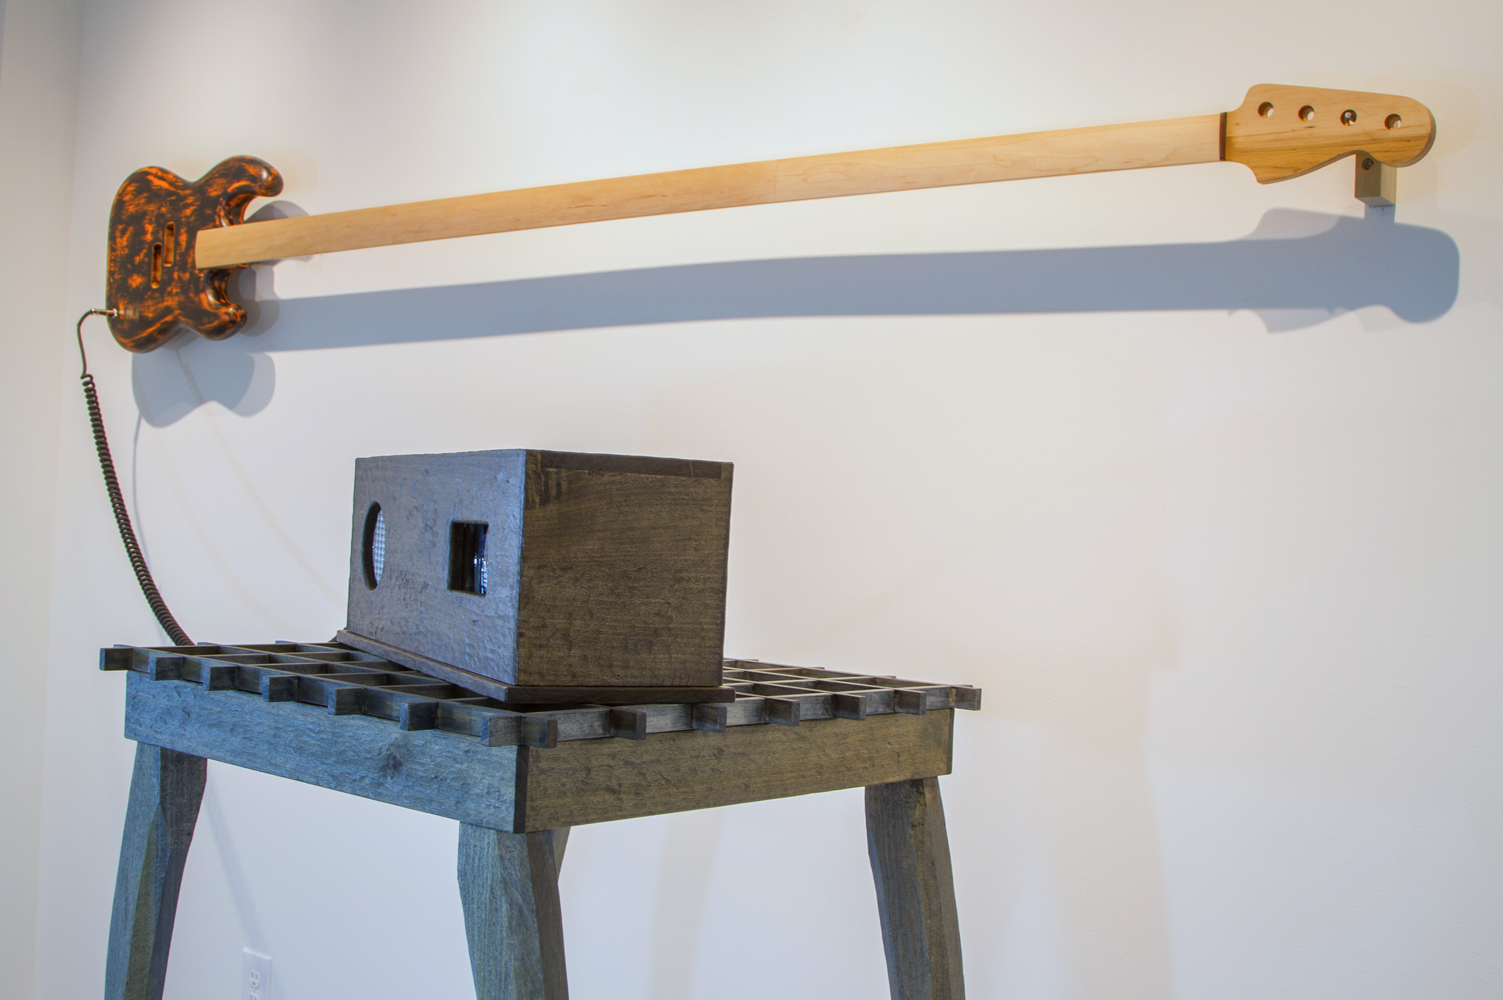 Matt Sellars, Put your ear to rails and listen for the hum, but for the chaos of man, 2017, maple , poplar, stain, audio + video installation, 116 x 67 x 34 inches, $6000.